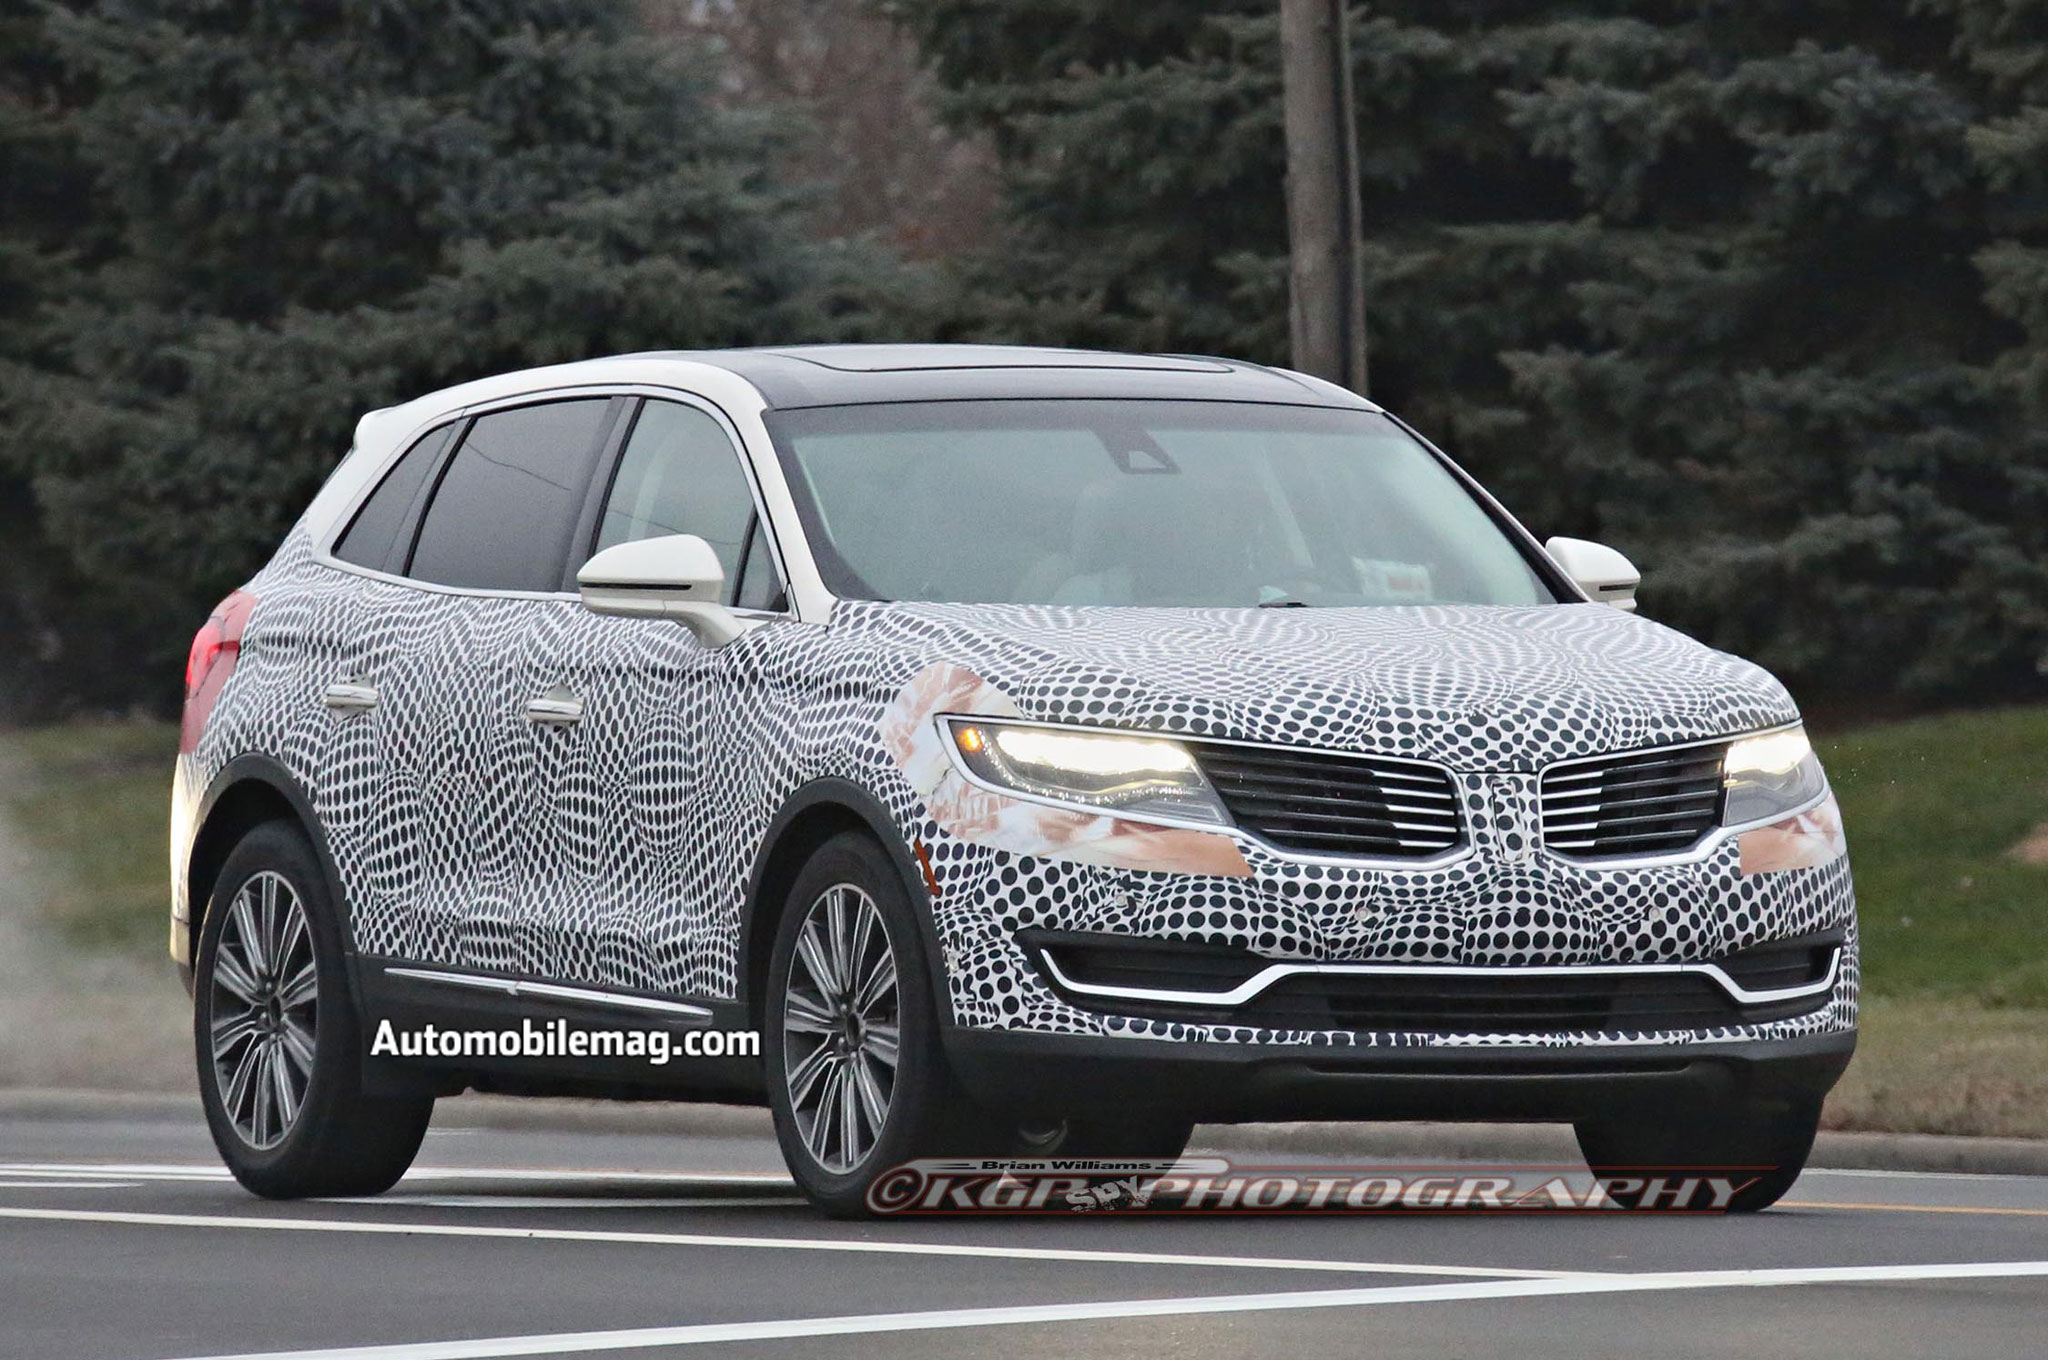 2016 lincoln mkx spied ahead of 2015 detroit auto show debut. Black Bedroom Furniture Sets. Home Design Ideas